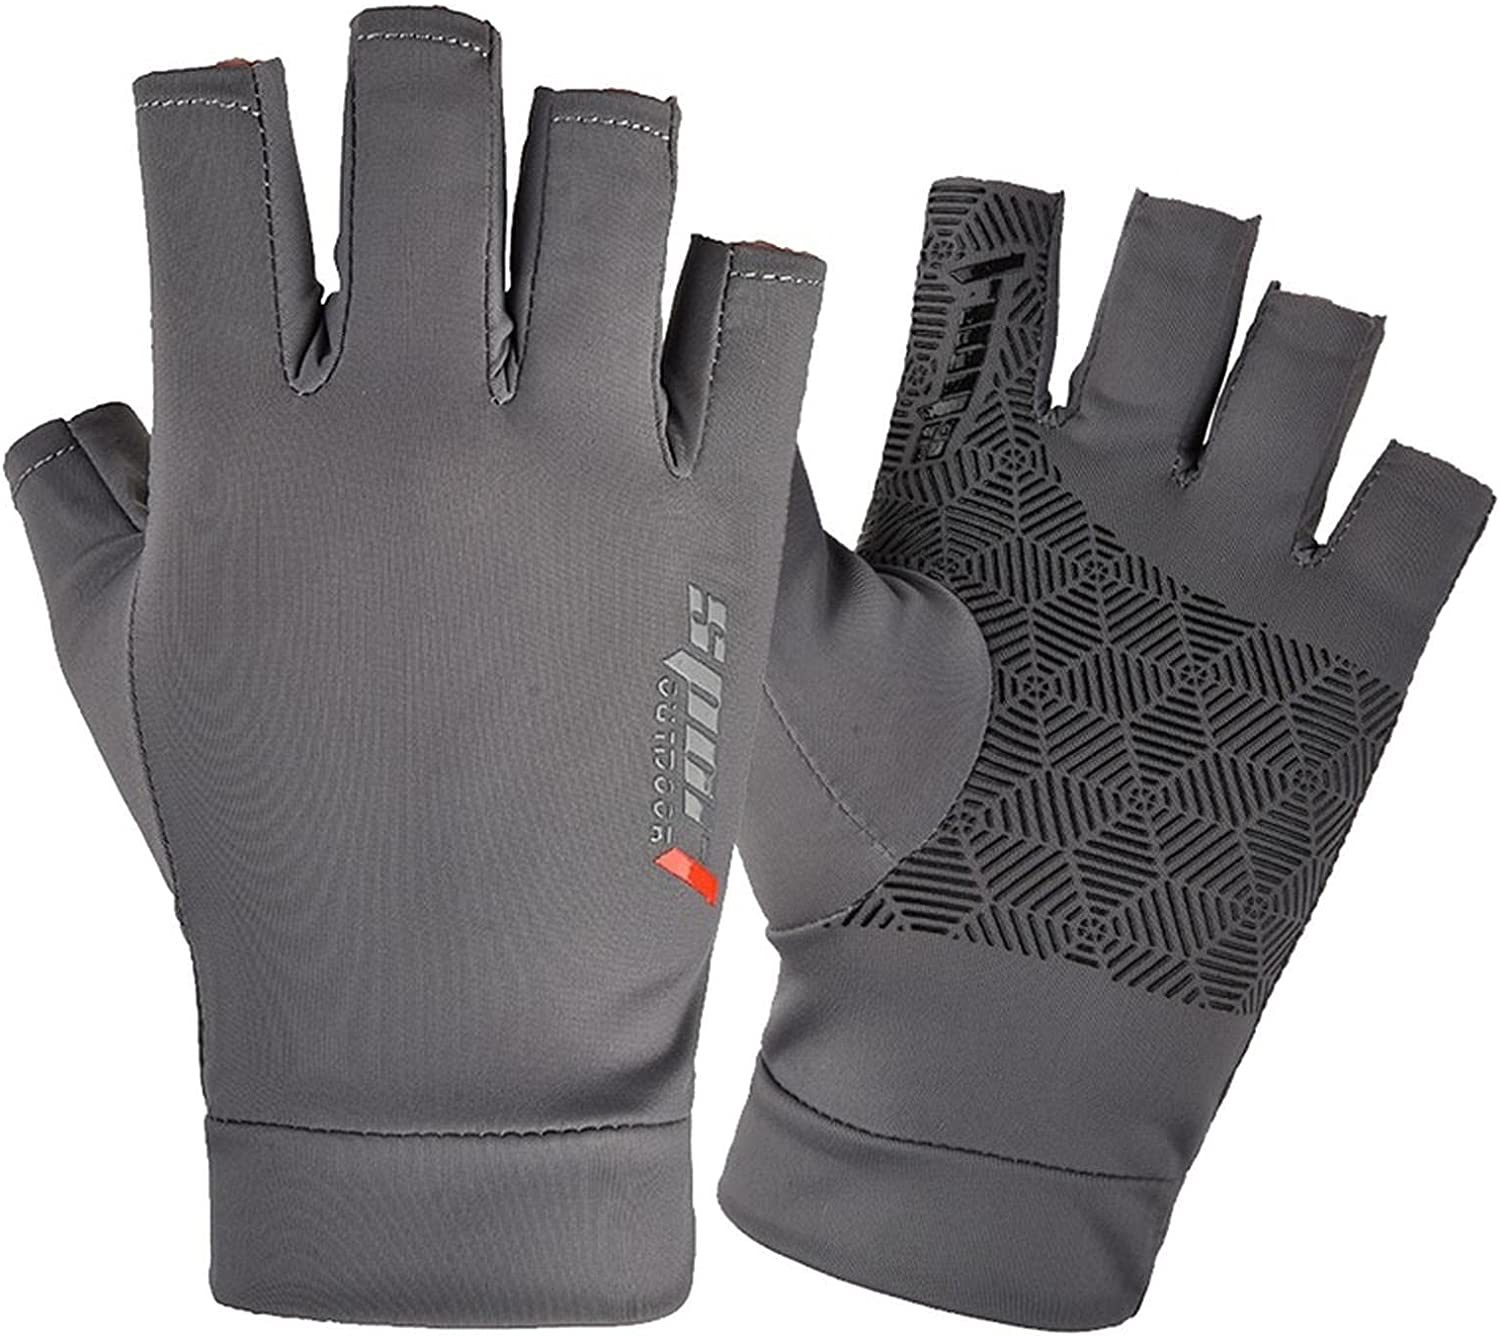 Raleigh Mall Rowing Gloves Nonslip Gym Outdoor Gl Driving Finger Cycling Half San Antonio Mall